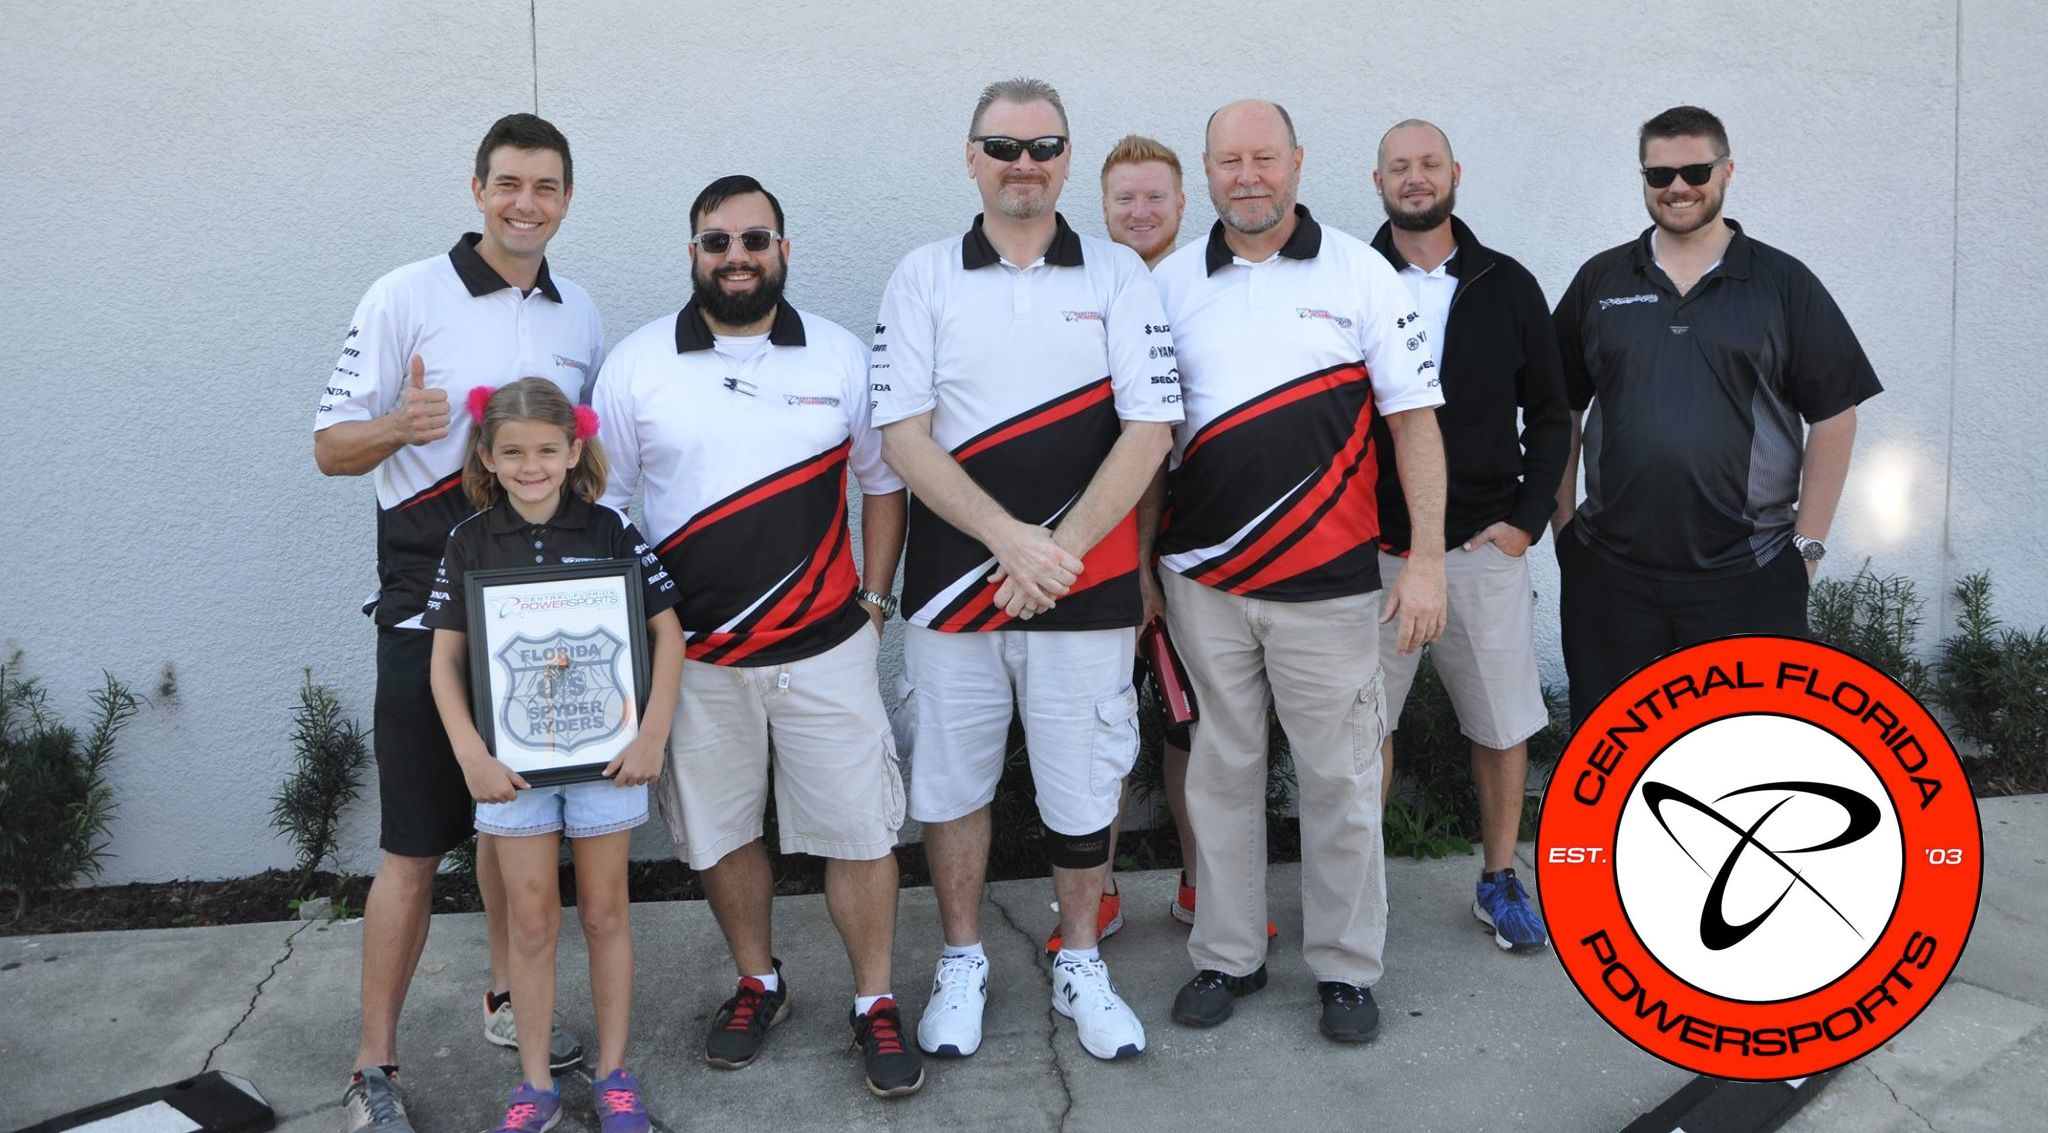 Central Florida PowerSports … US Spyder Ryders Sponsor extraordinaire